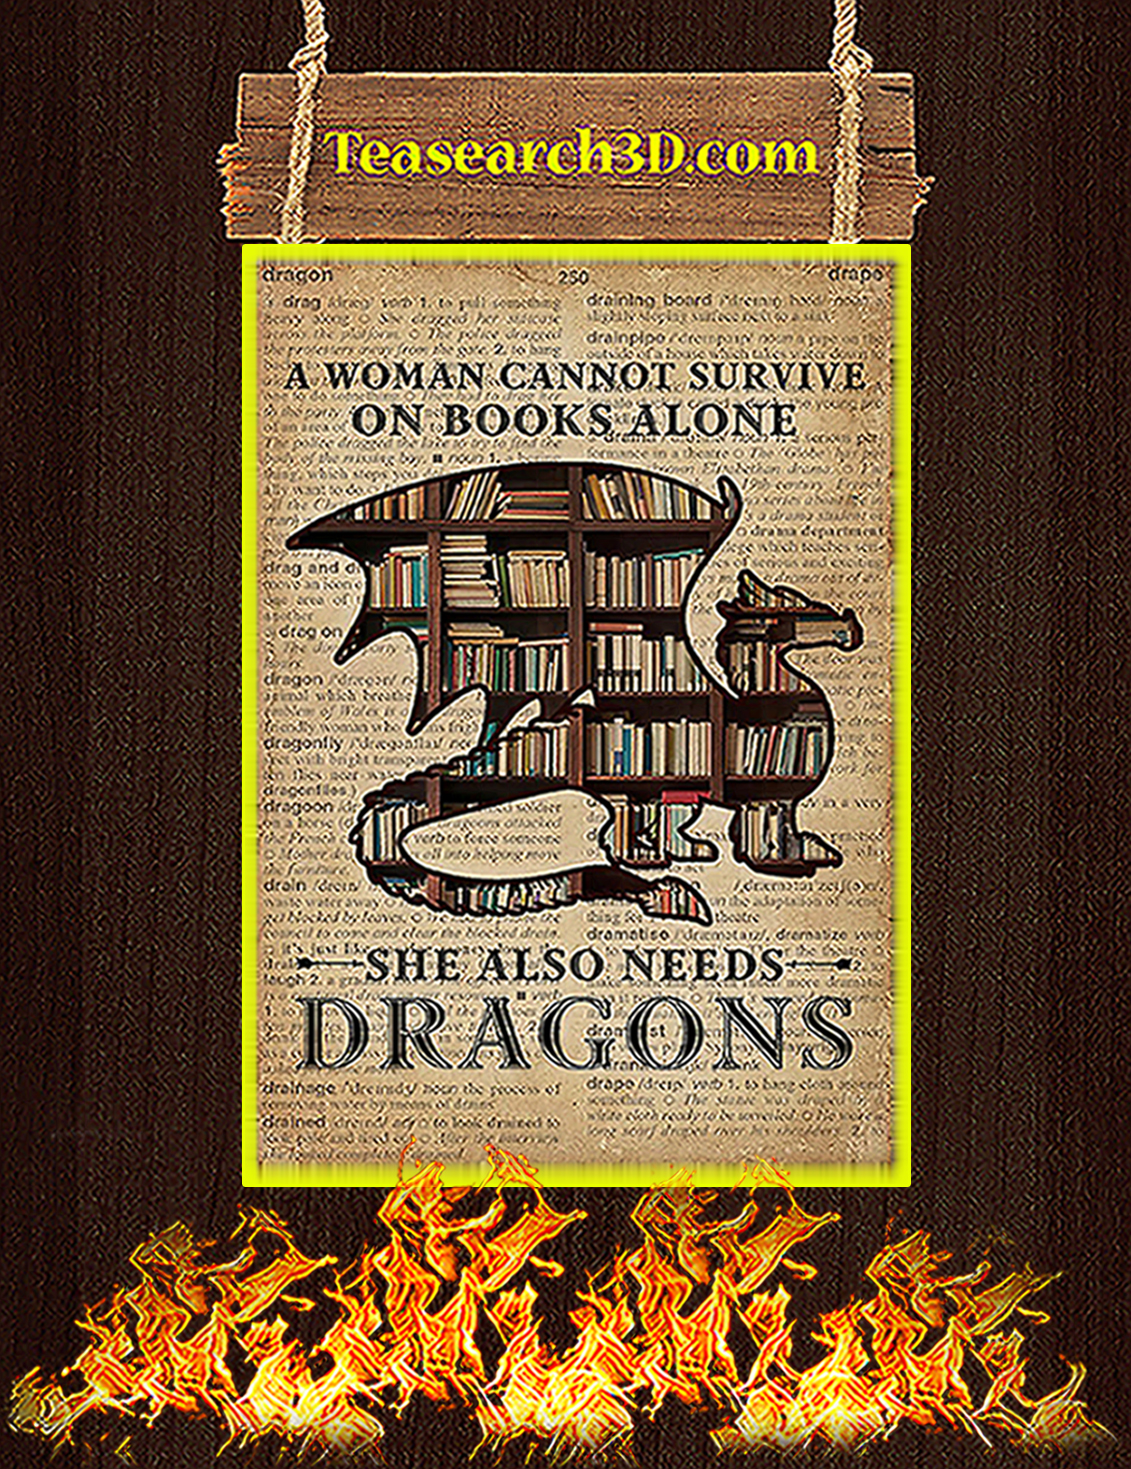 A woman cannot survive on books alone she also needs dragons poster A3